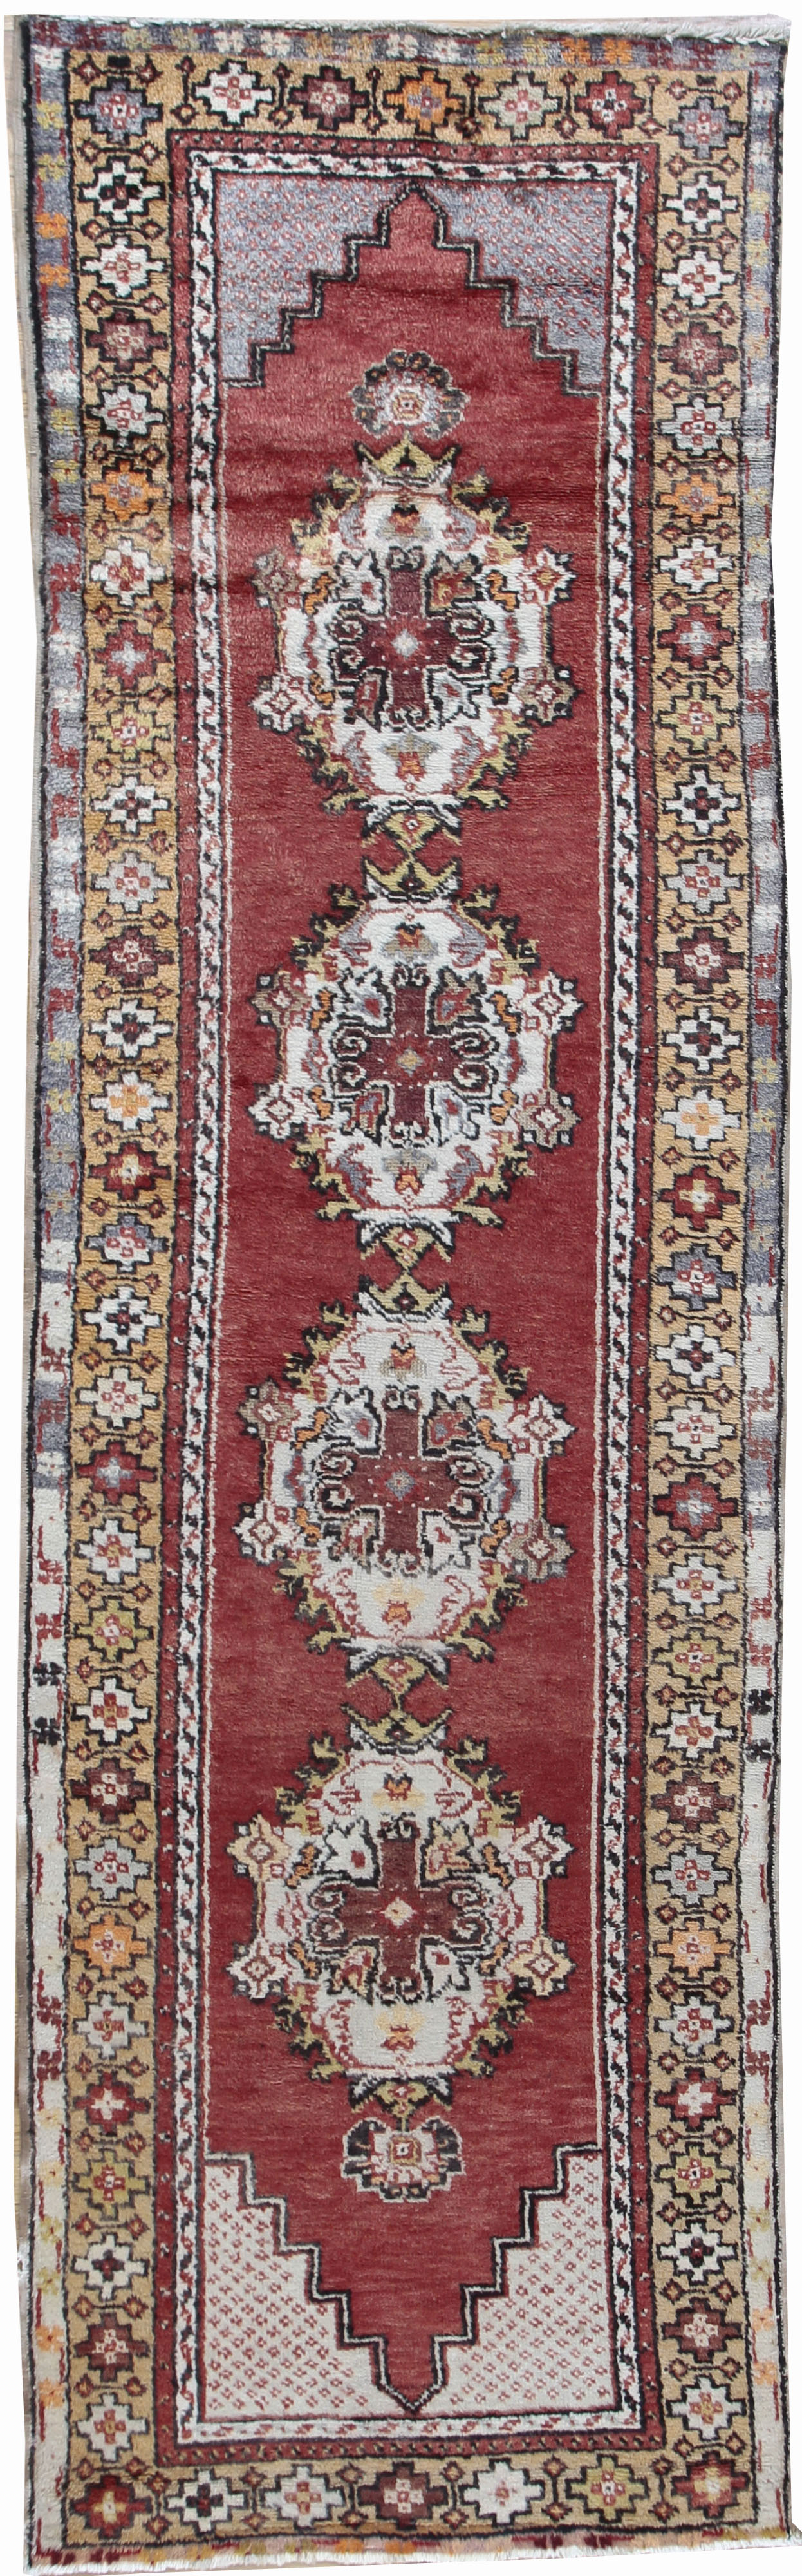 Vintage Turkish Oushak Runner Rug